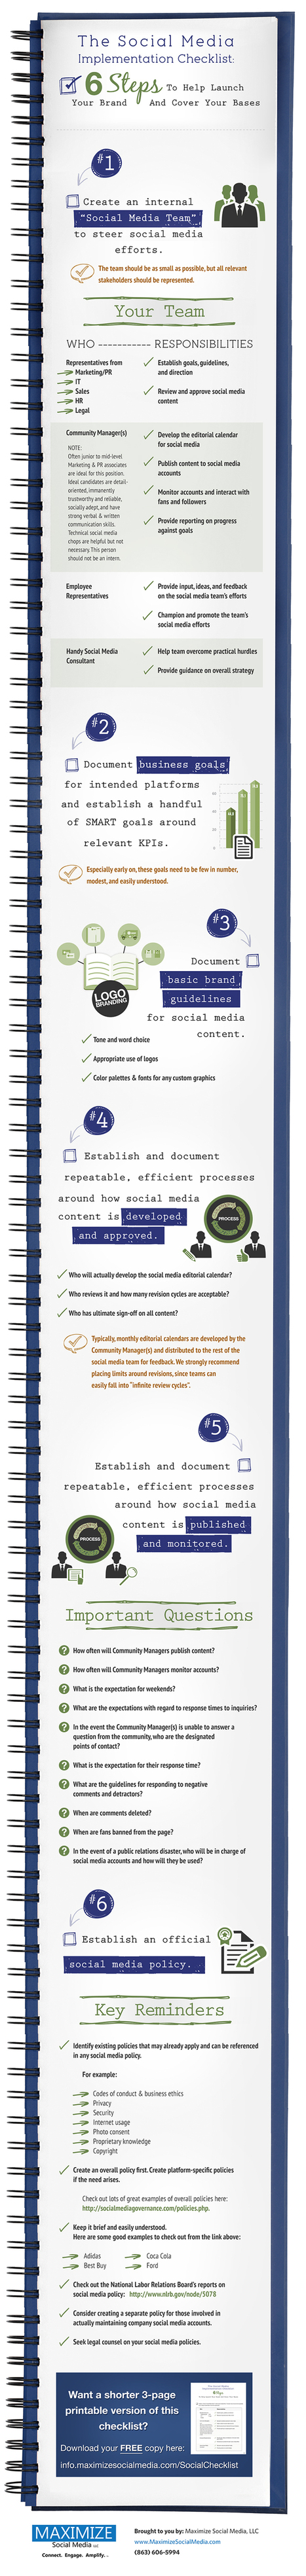 Social Media Implementation Checklist | Morales Marketing | Scoop.it